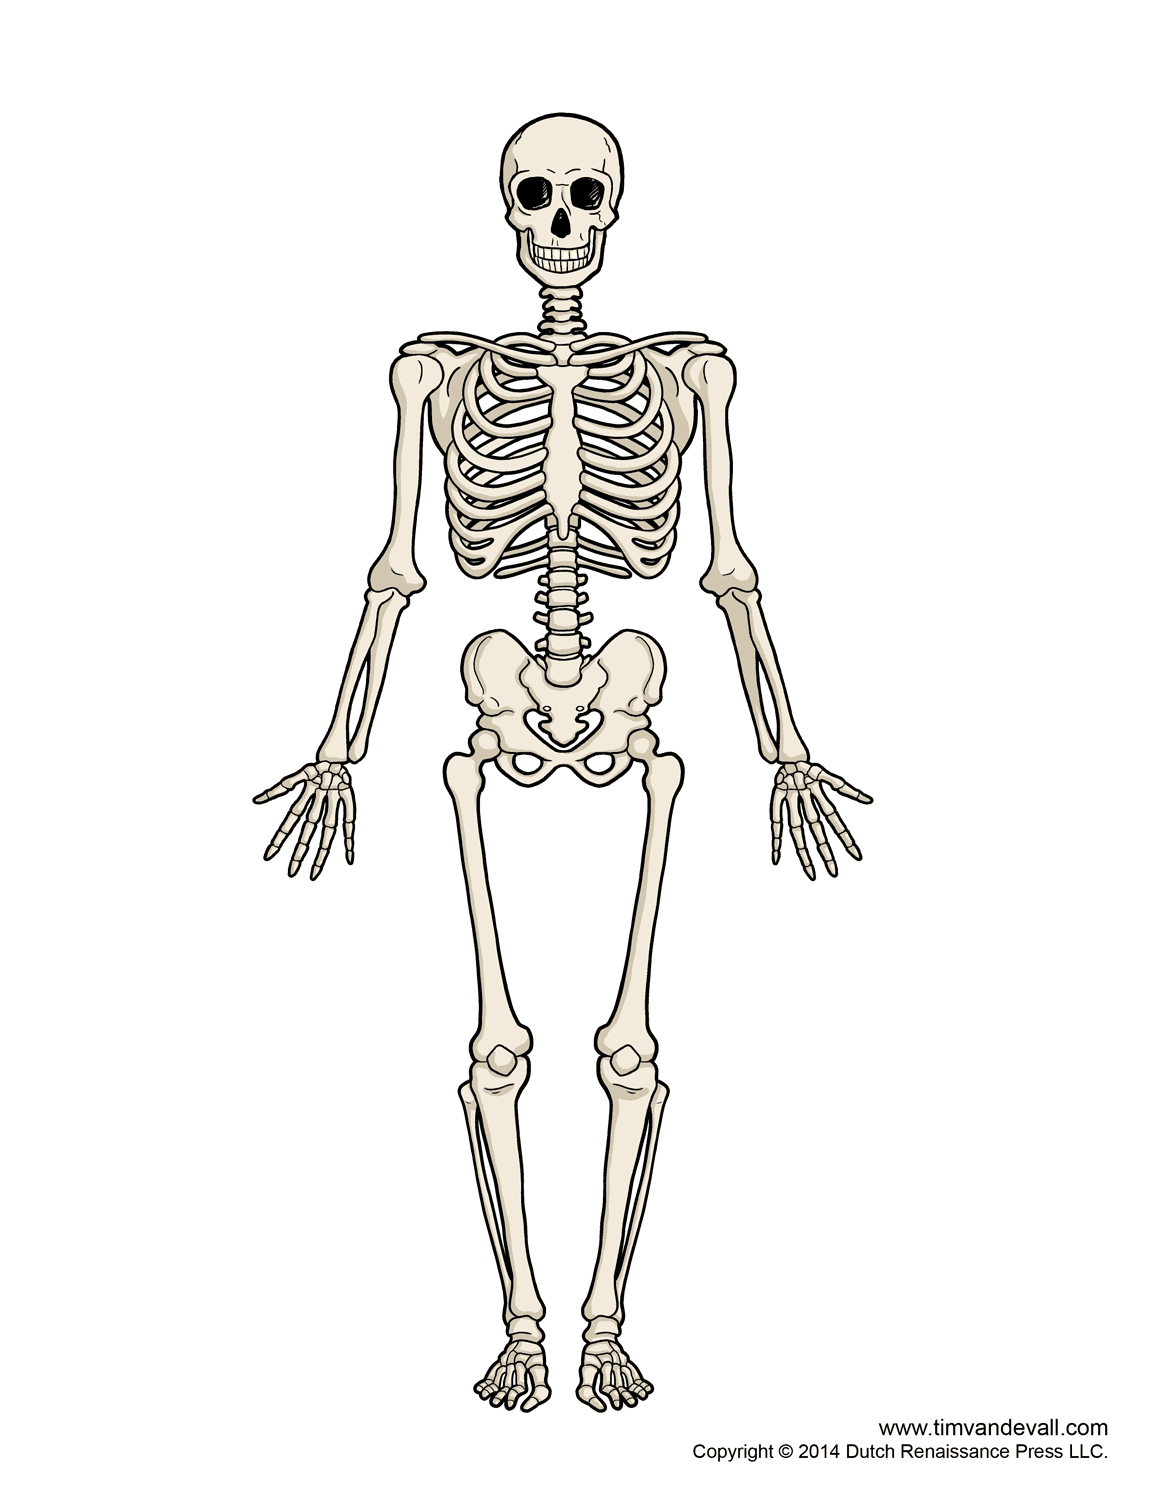 Biology clipart human physiology. Skeletal system bone structure